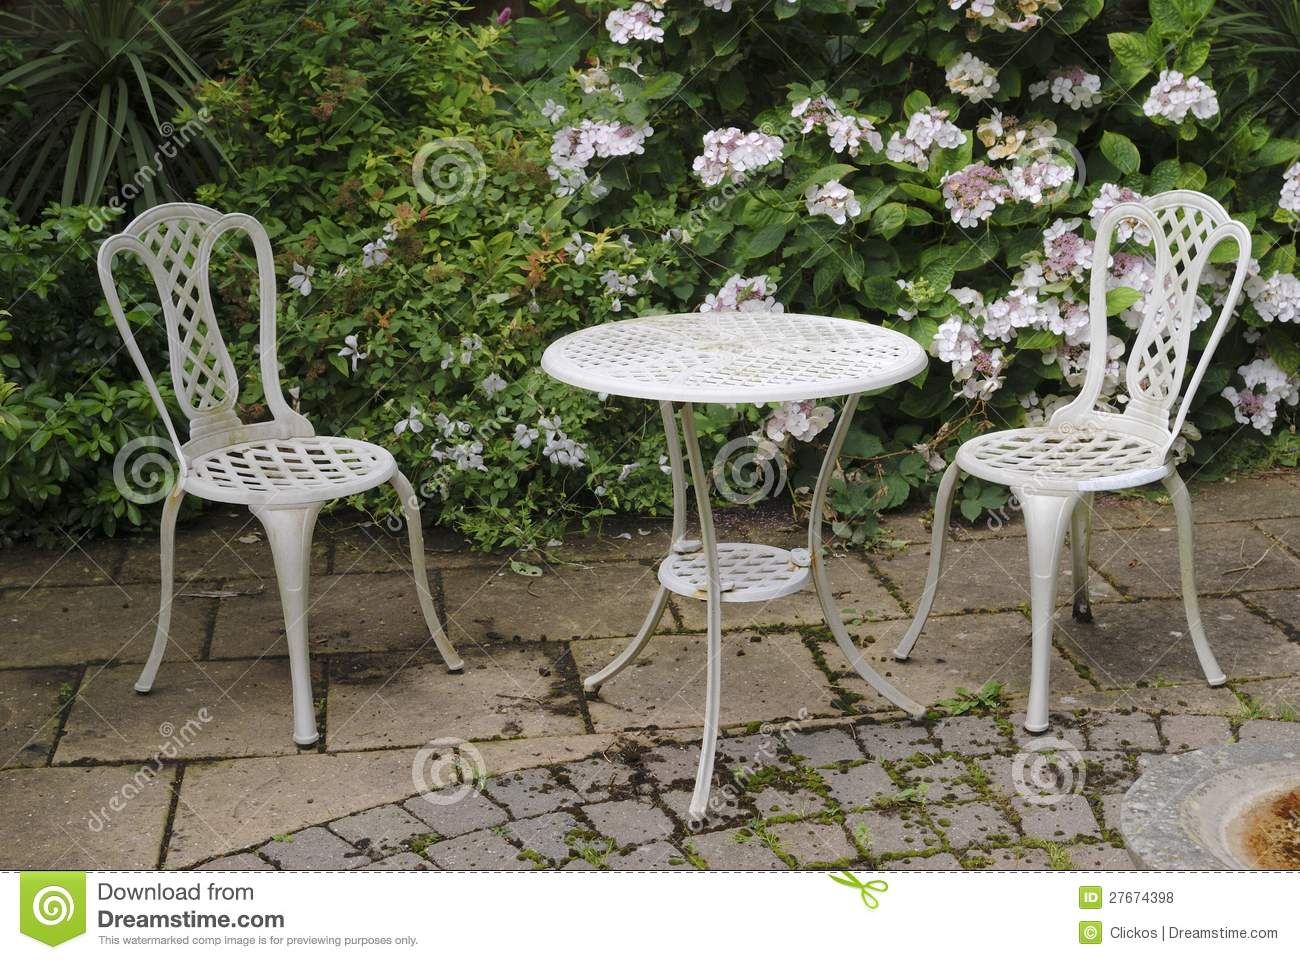 Garden table and chairs stock photo image of paving 27674398 - Garden furniture table and chairs ...